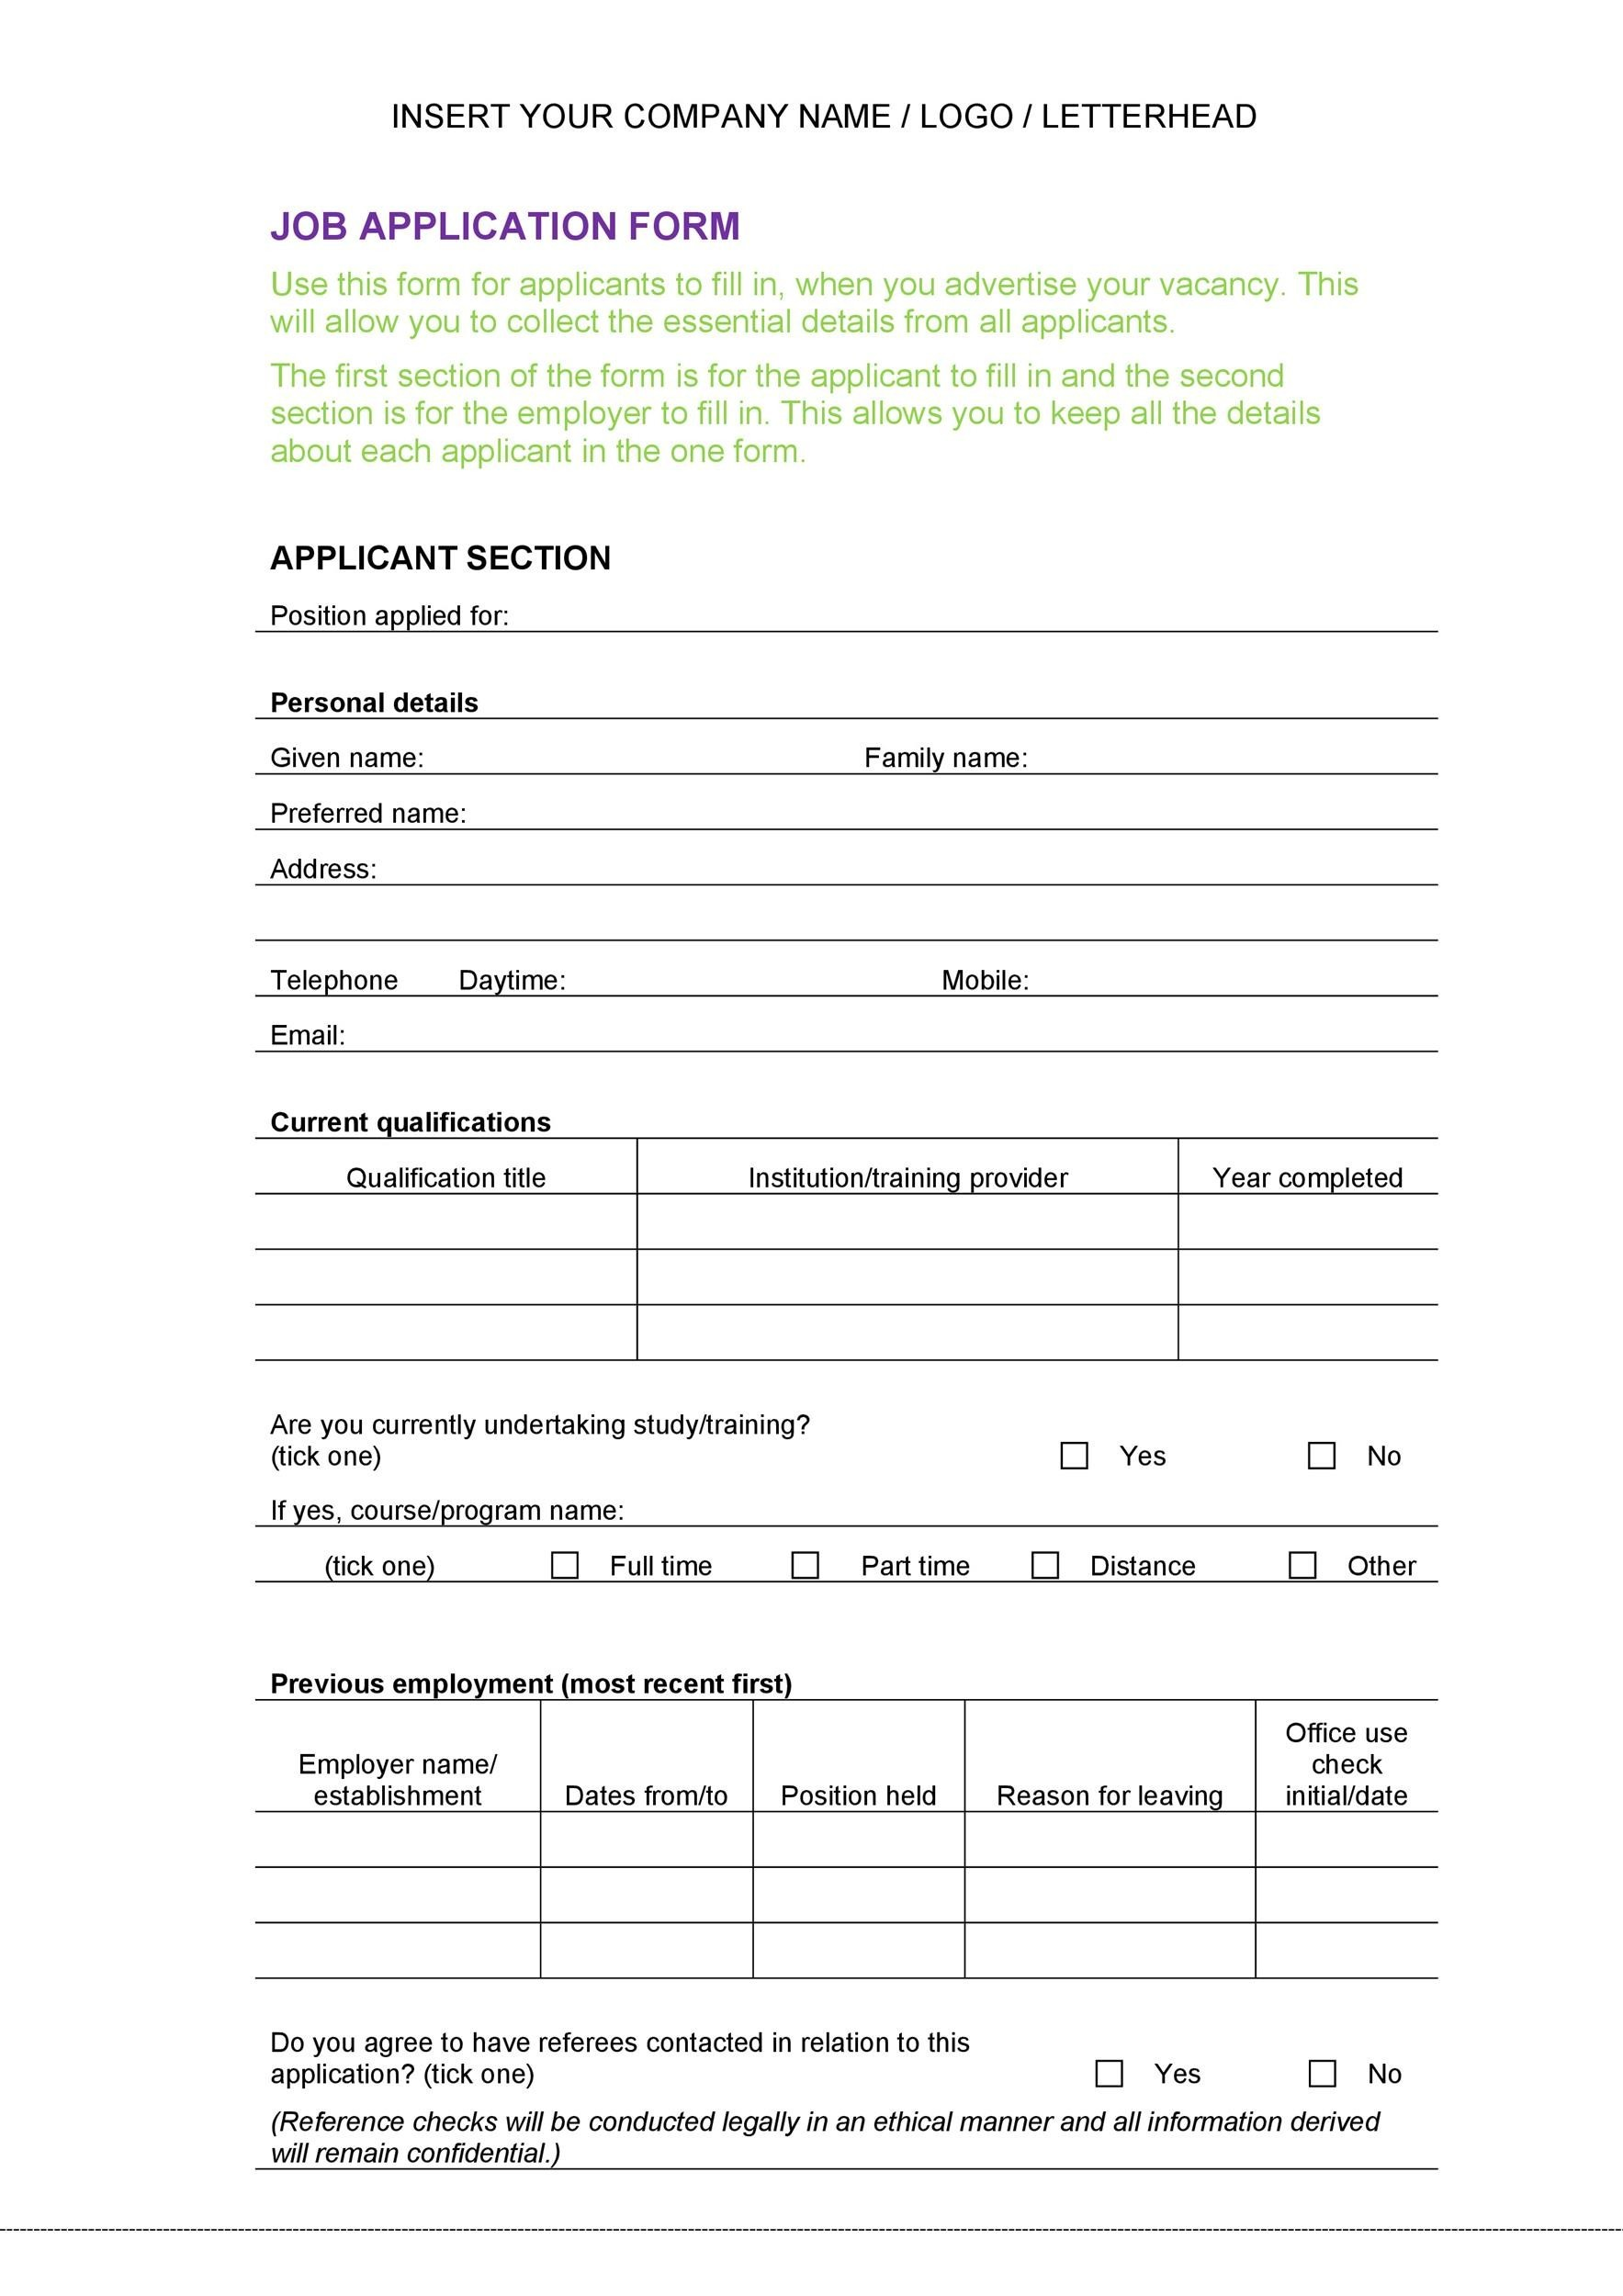 50 Free Employment / Job Application Form Templates ... Job Application Form Medical Office on medical assistant job application, office assistant job application, restaurant job application, medical center job application,